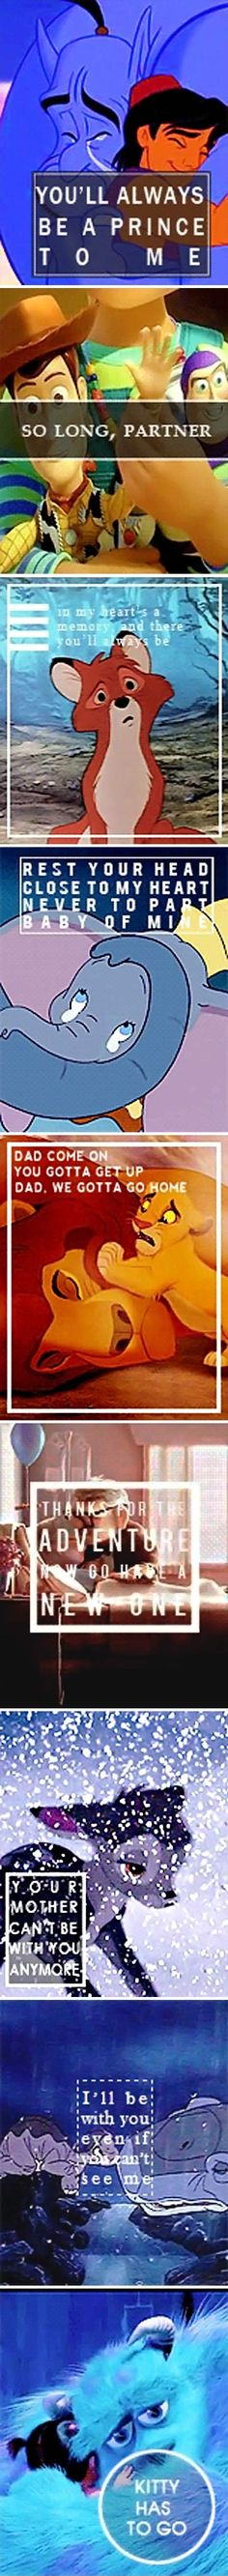 Excuse me while I sob in a corner on the floor. disney movies, feel, disney quotes, curls, movie quotes, childhood, heart broken, cri, thing